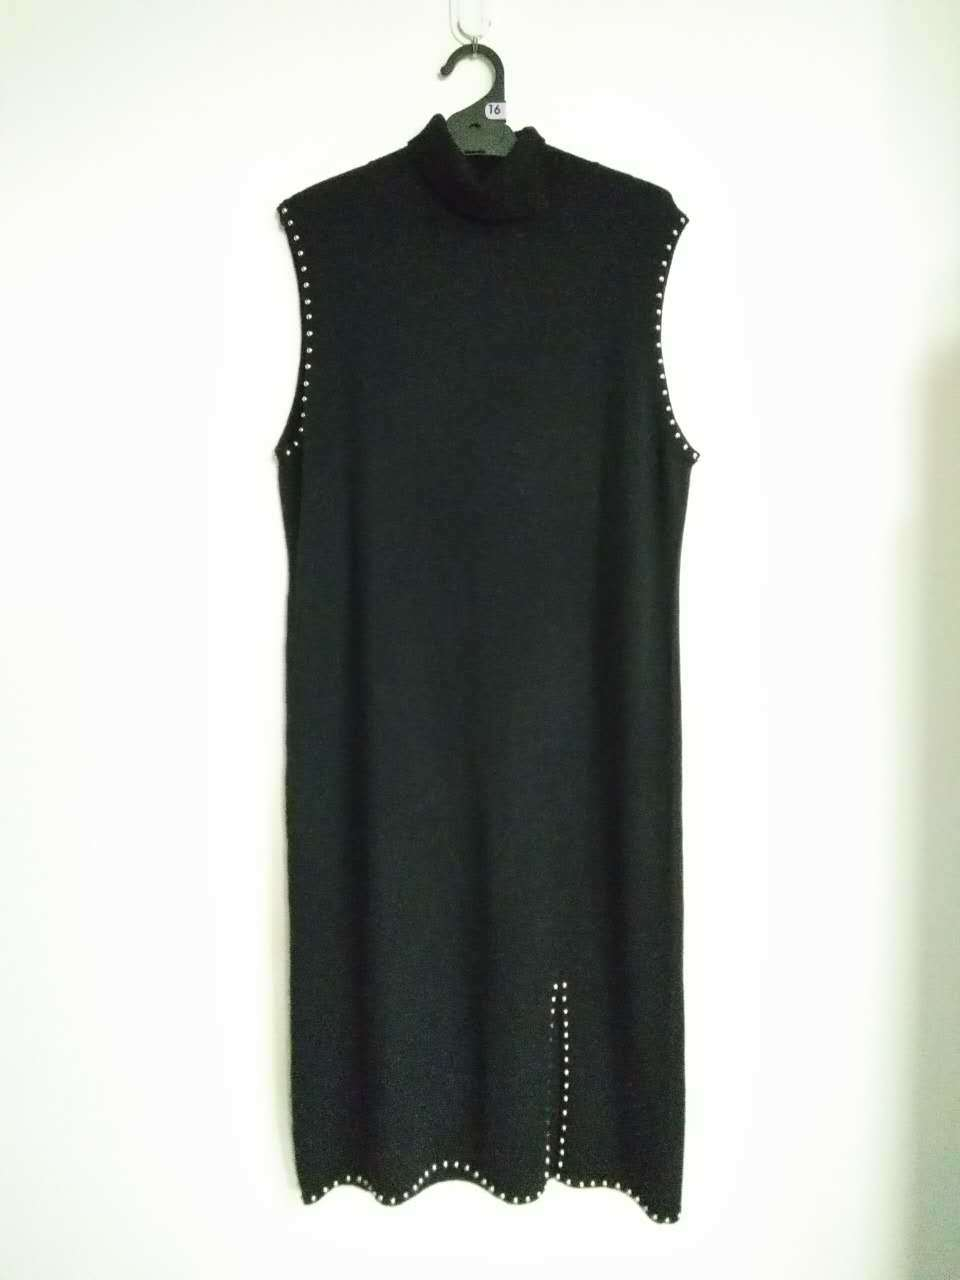 Trj014, 100%Cashmere, Women&Lady, Black, Good Quality, Dress